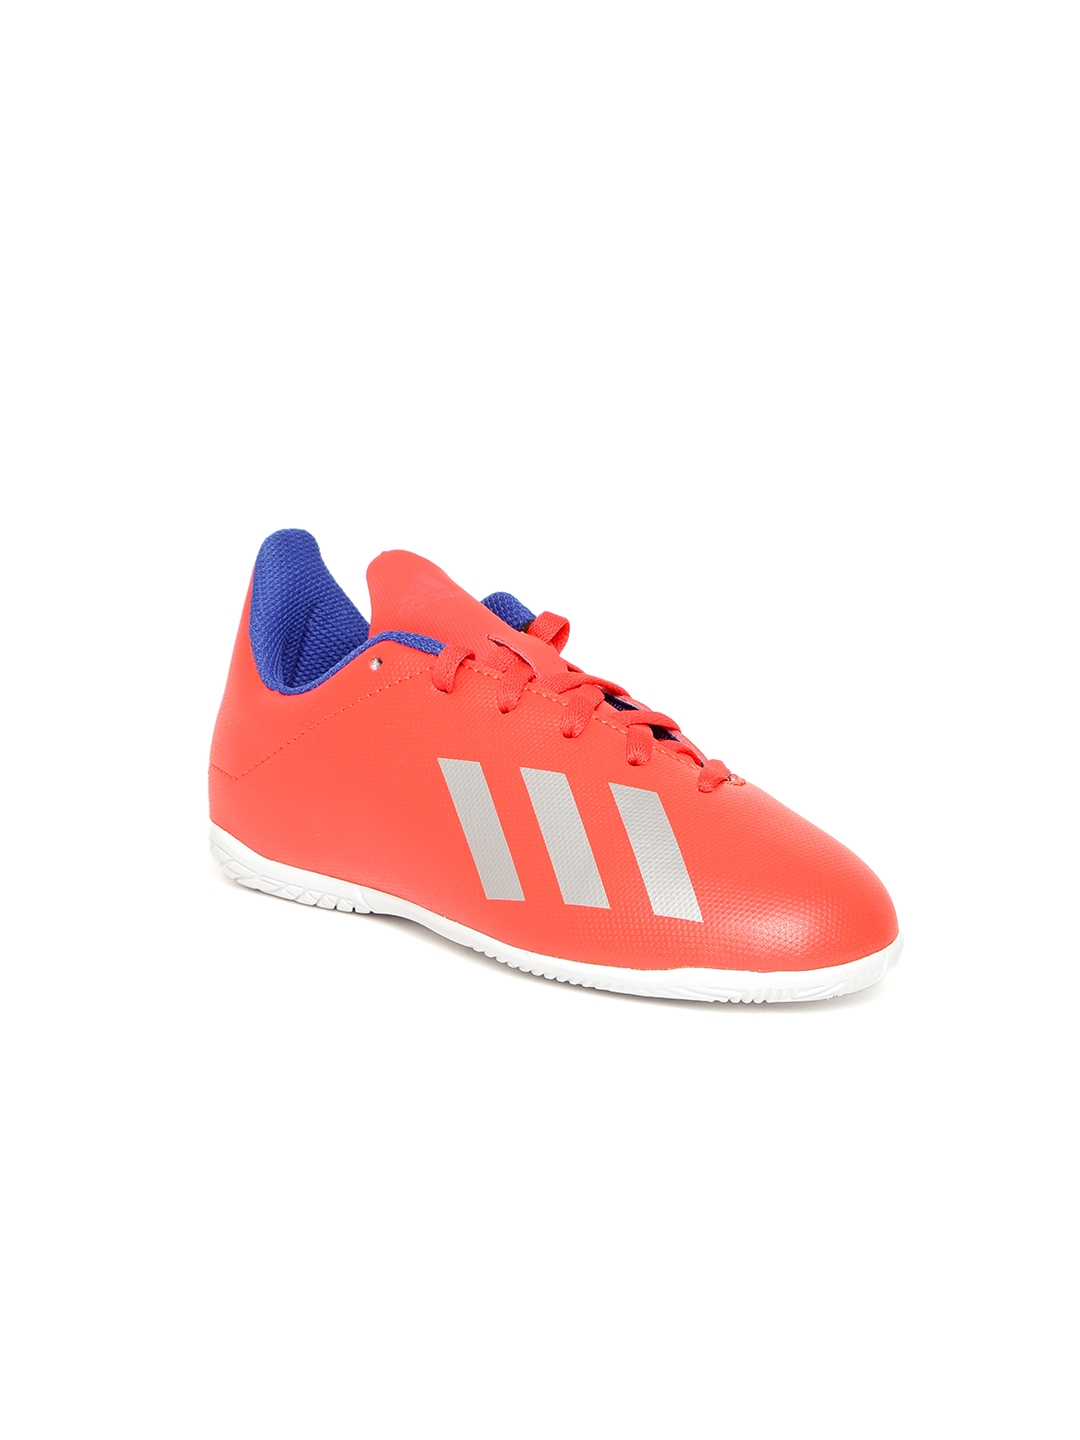 premium selection 9453d d1330 ADIDAS Boys Red X 18.4 IN Football Shoes